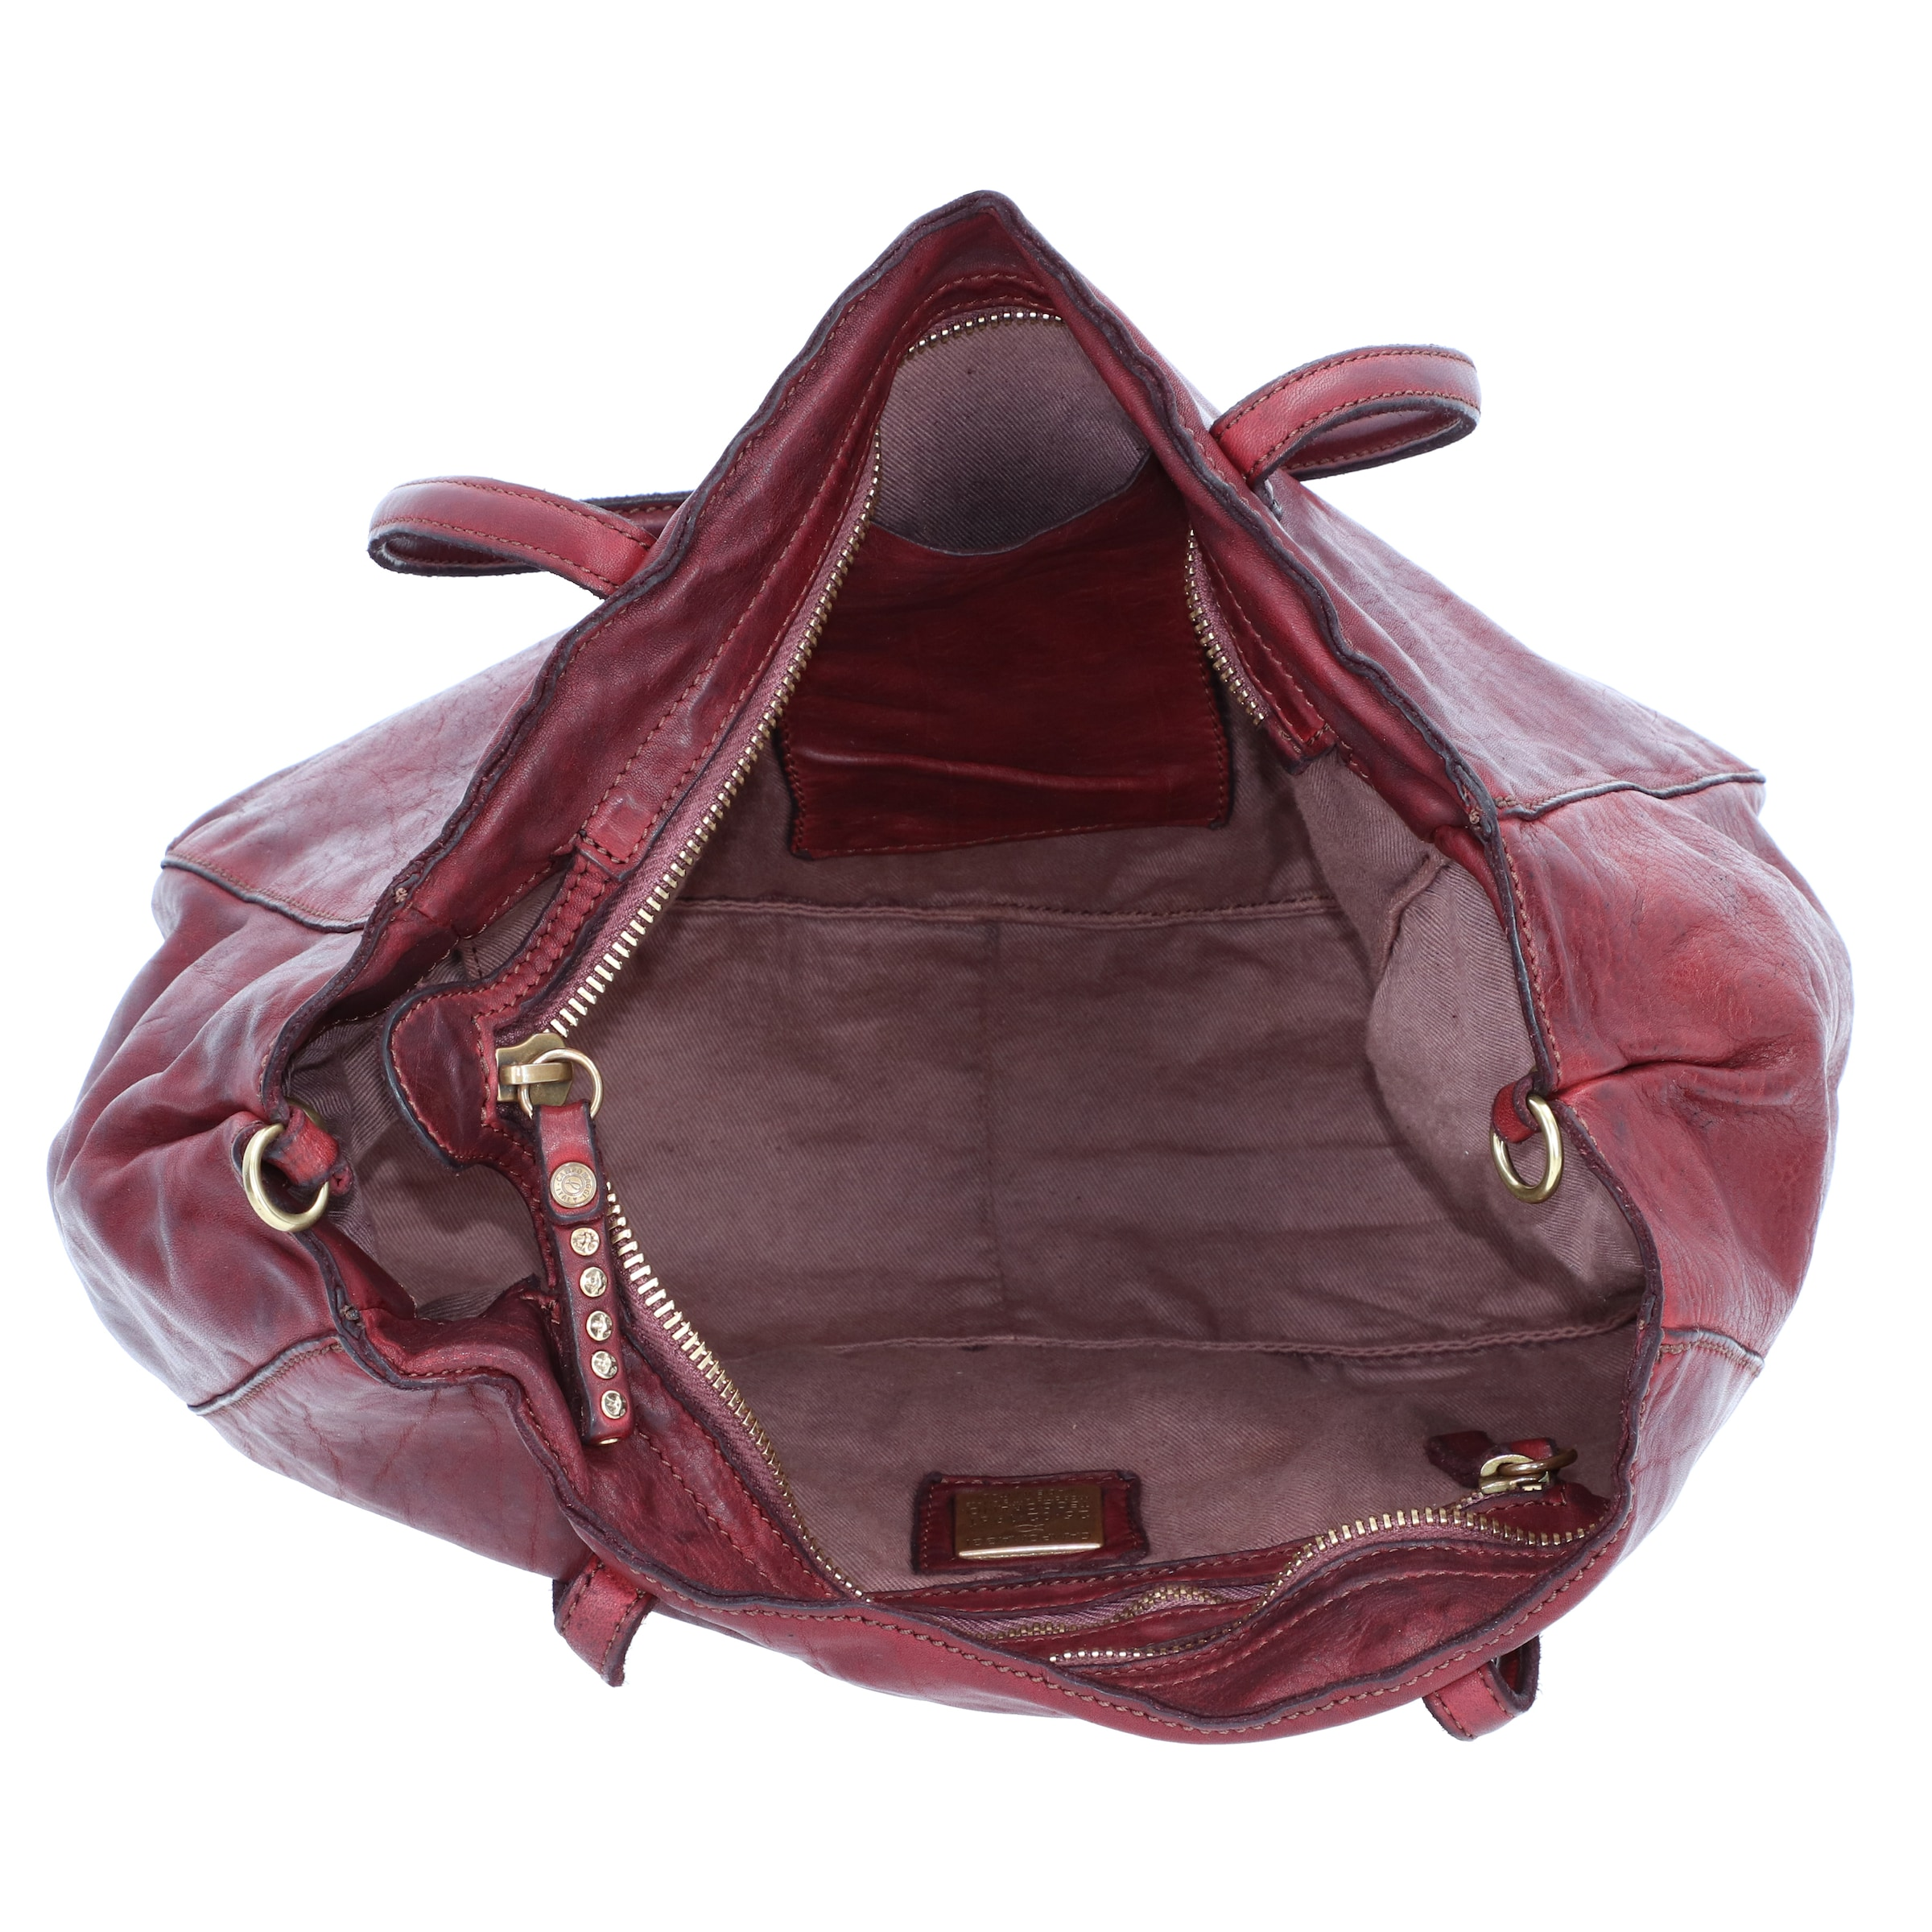 Campomaggi In Campomaggi Weinrot Schultertasche Weinrot Schultertasche In bv7IYy6fg